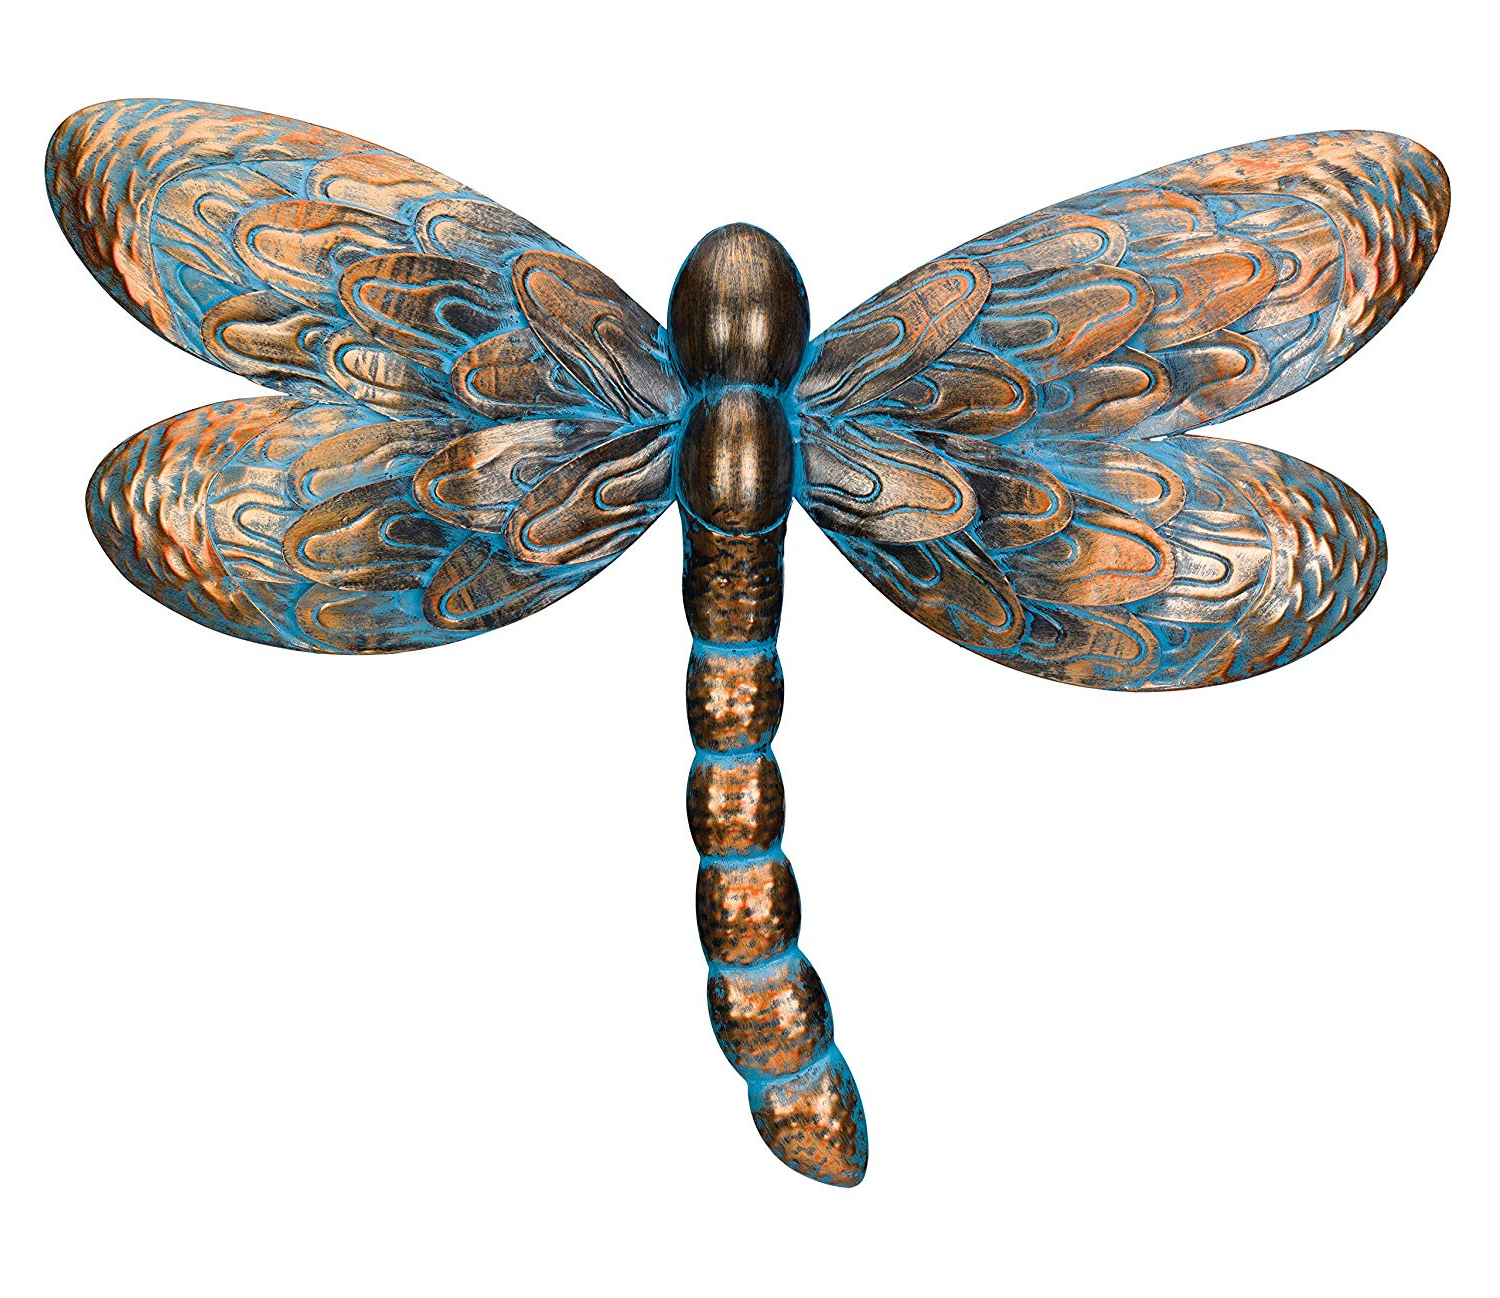 Dragonfly Wall Decor Intended For Favorite Amazon : Regal Art & Gift Patina Dragonfly Wall Decor : Garden (View 6 of 20)